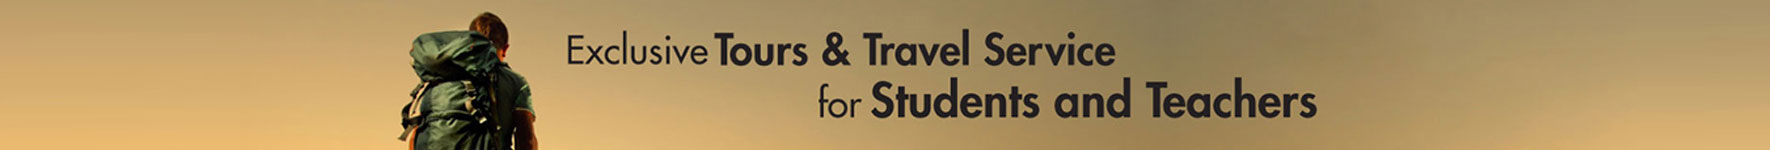 edutrips-services-header